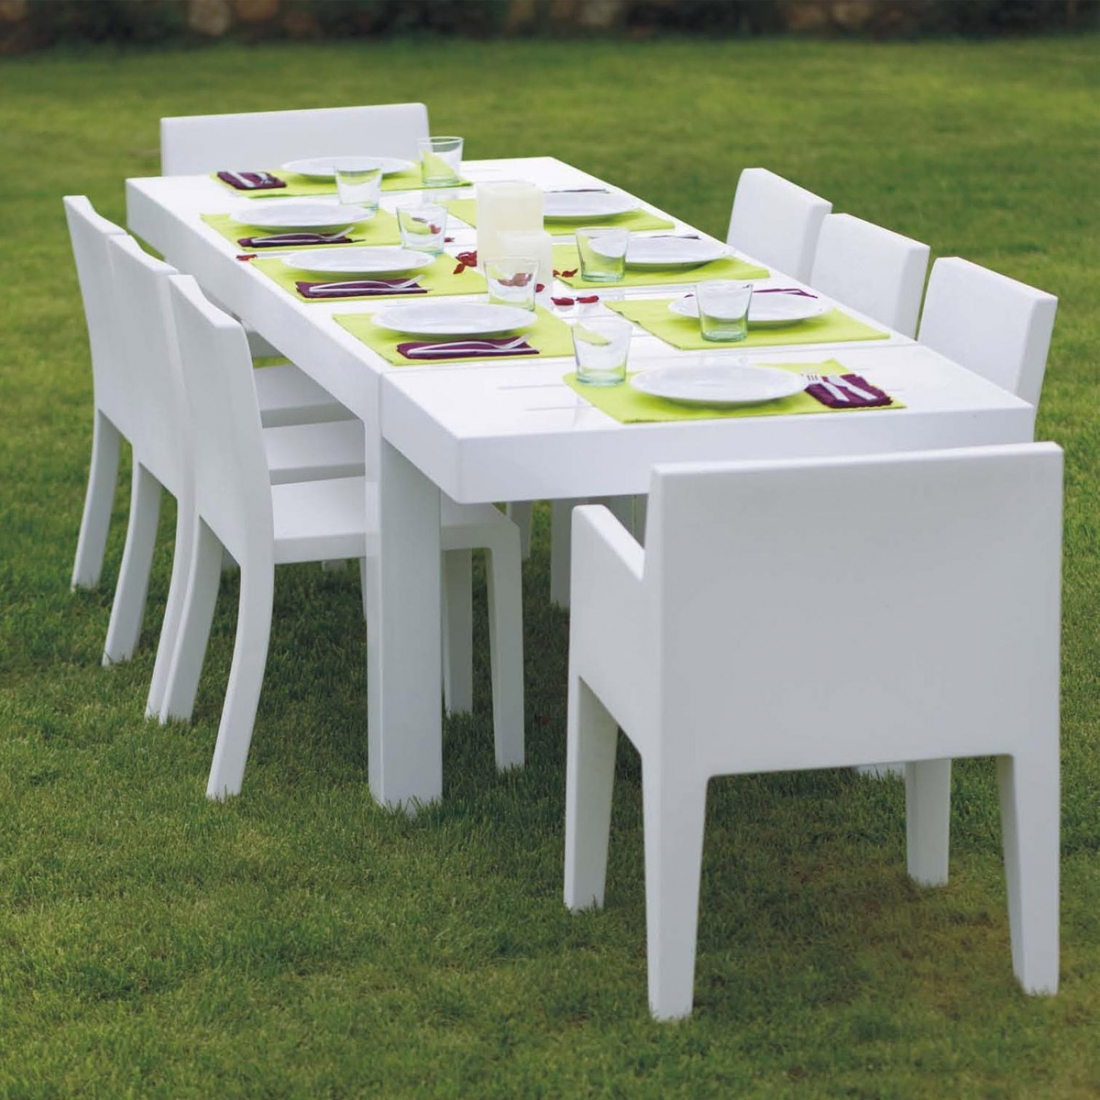 Table de jardin design 10 personnes jut par vondom for Table exterieur 10 personnes